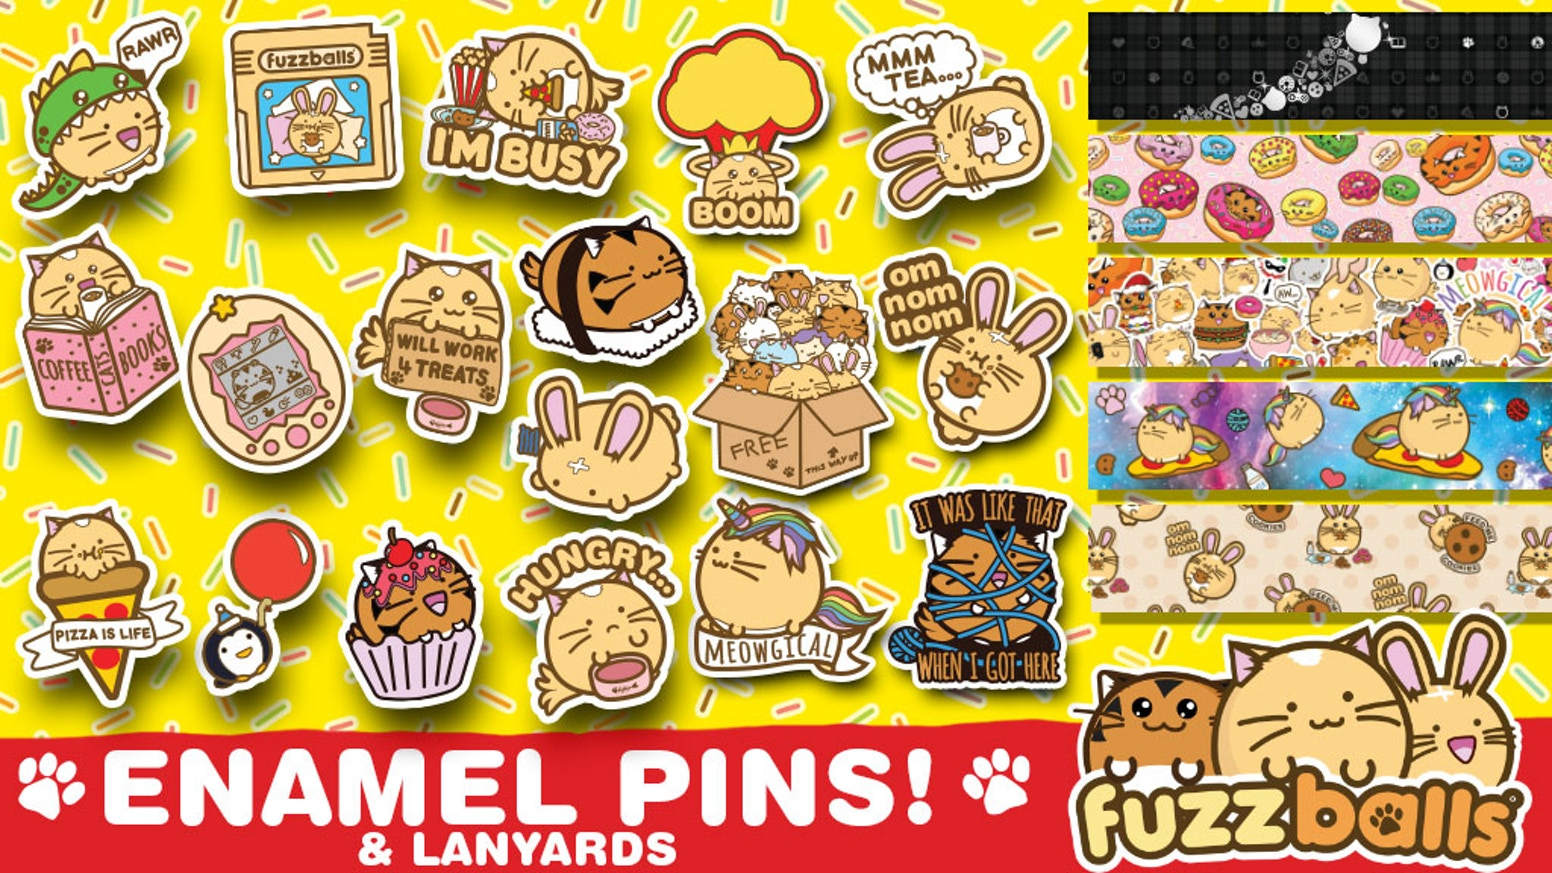 Super Cute Enamel Pins featuring the popular Fuzzballs characters as they eat pizza, play video games and go on the hunt for adventure.